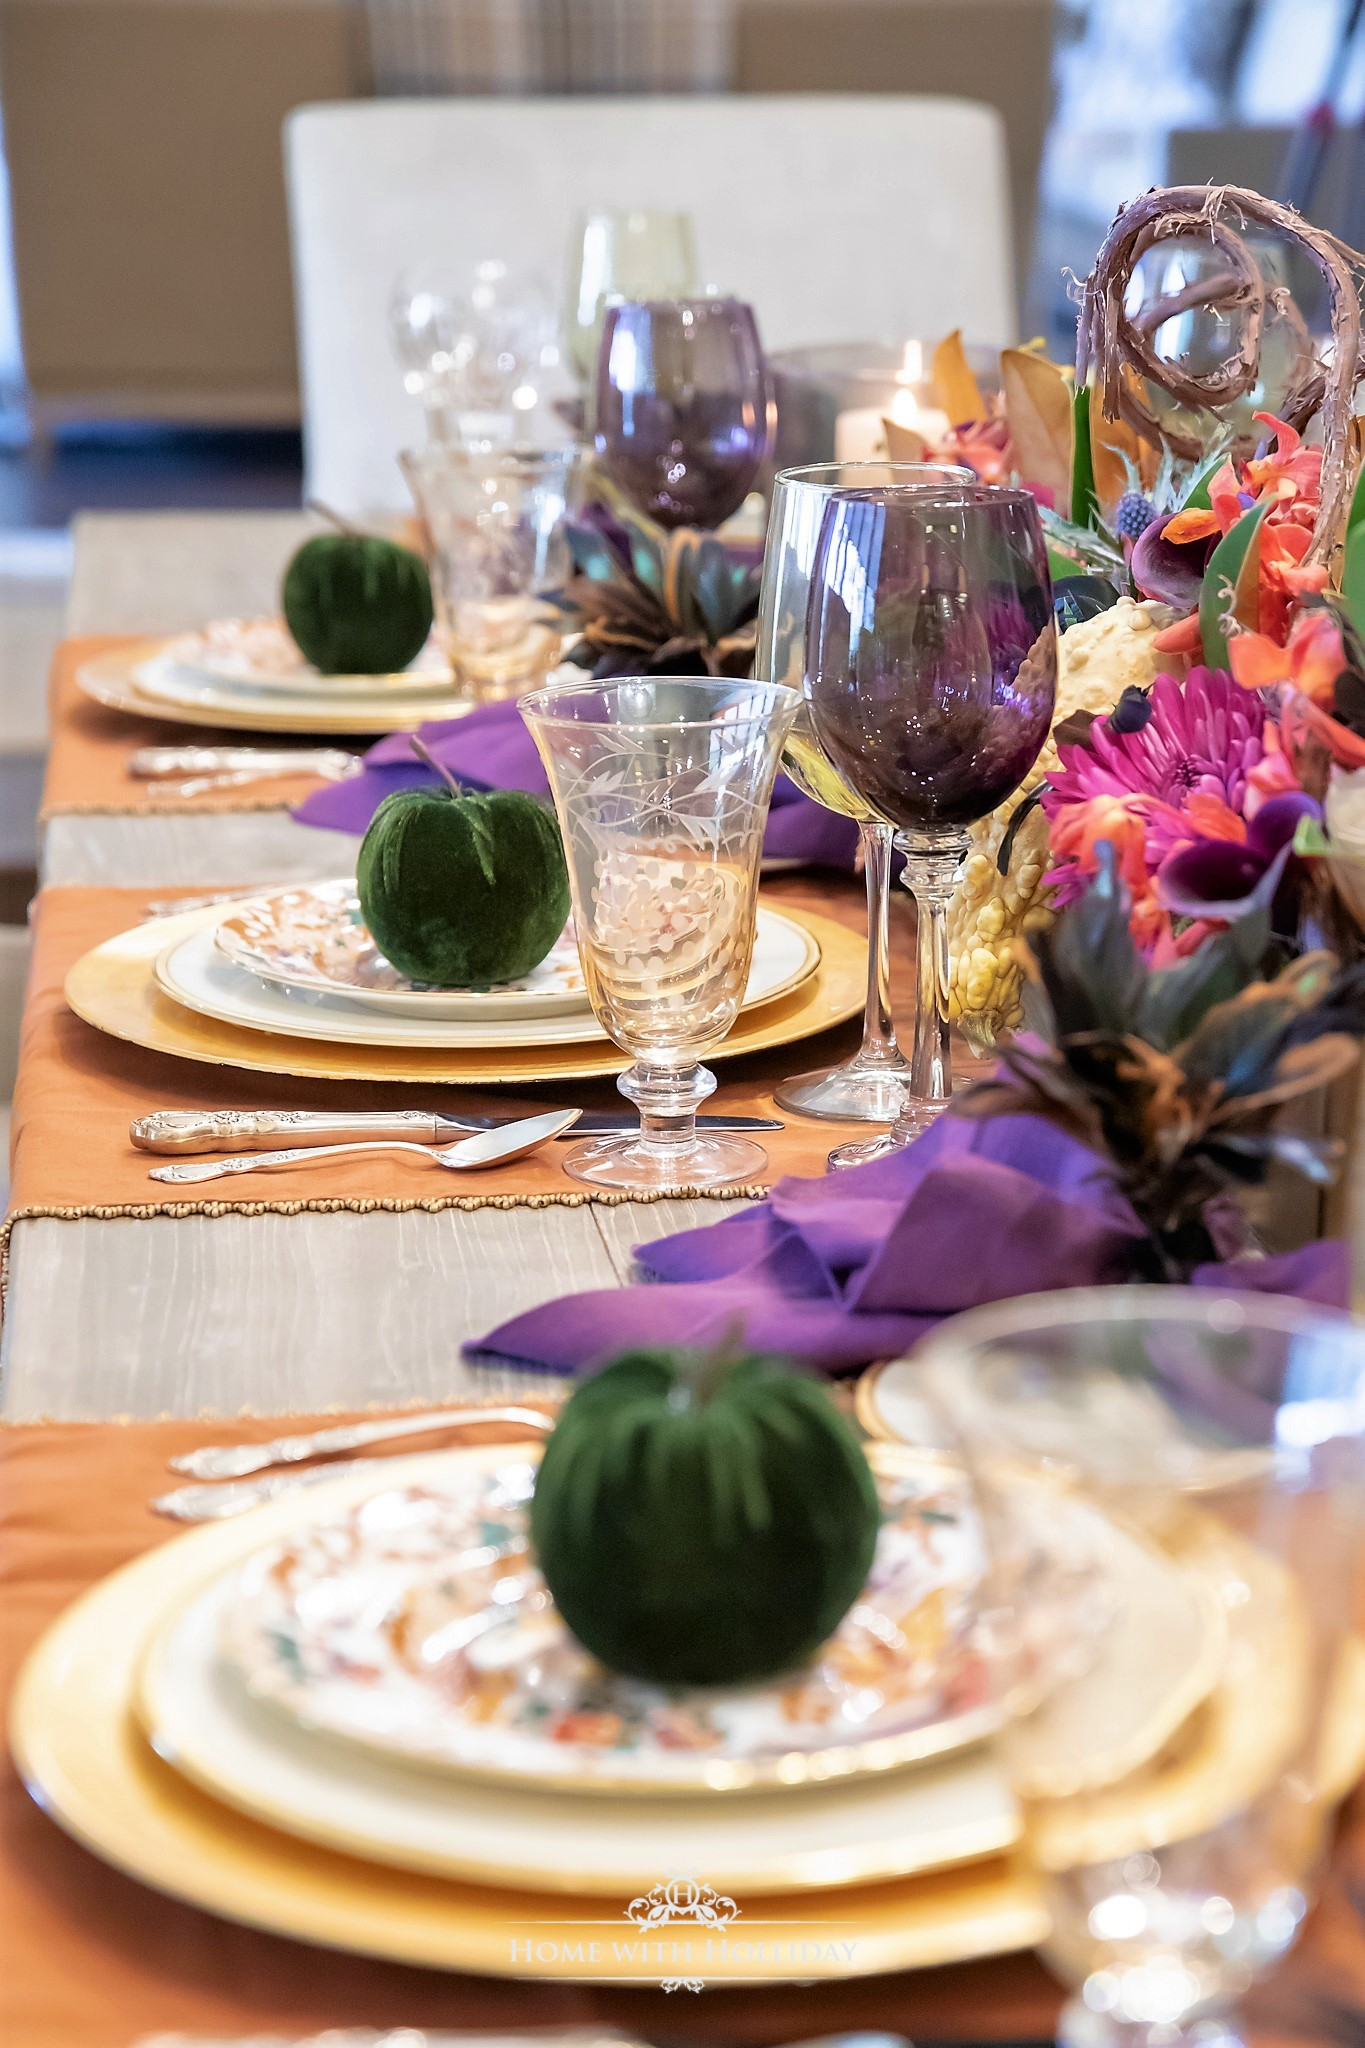 My Top Ten Posts of 2018 - Jewel-Toned Thanksgiving Table Setting - Home with Holliday